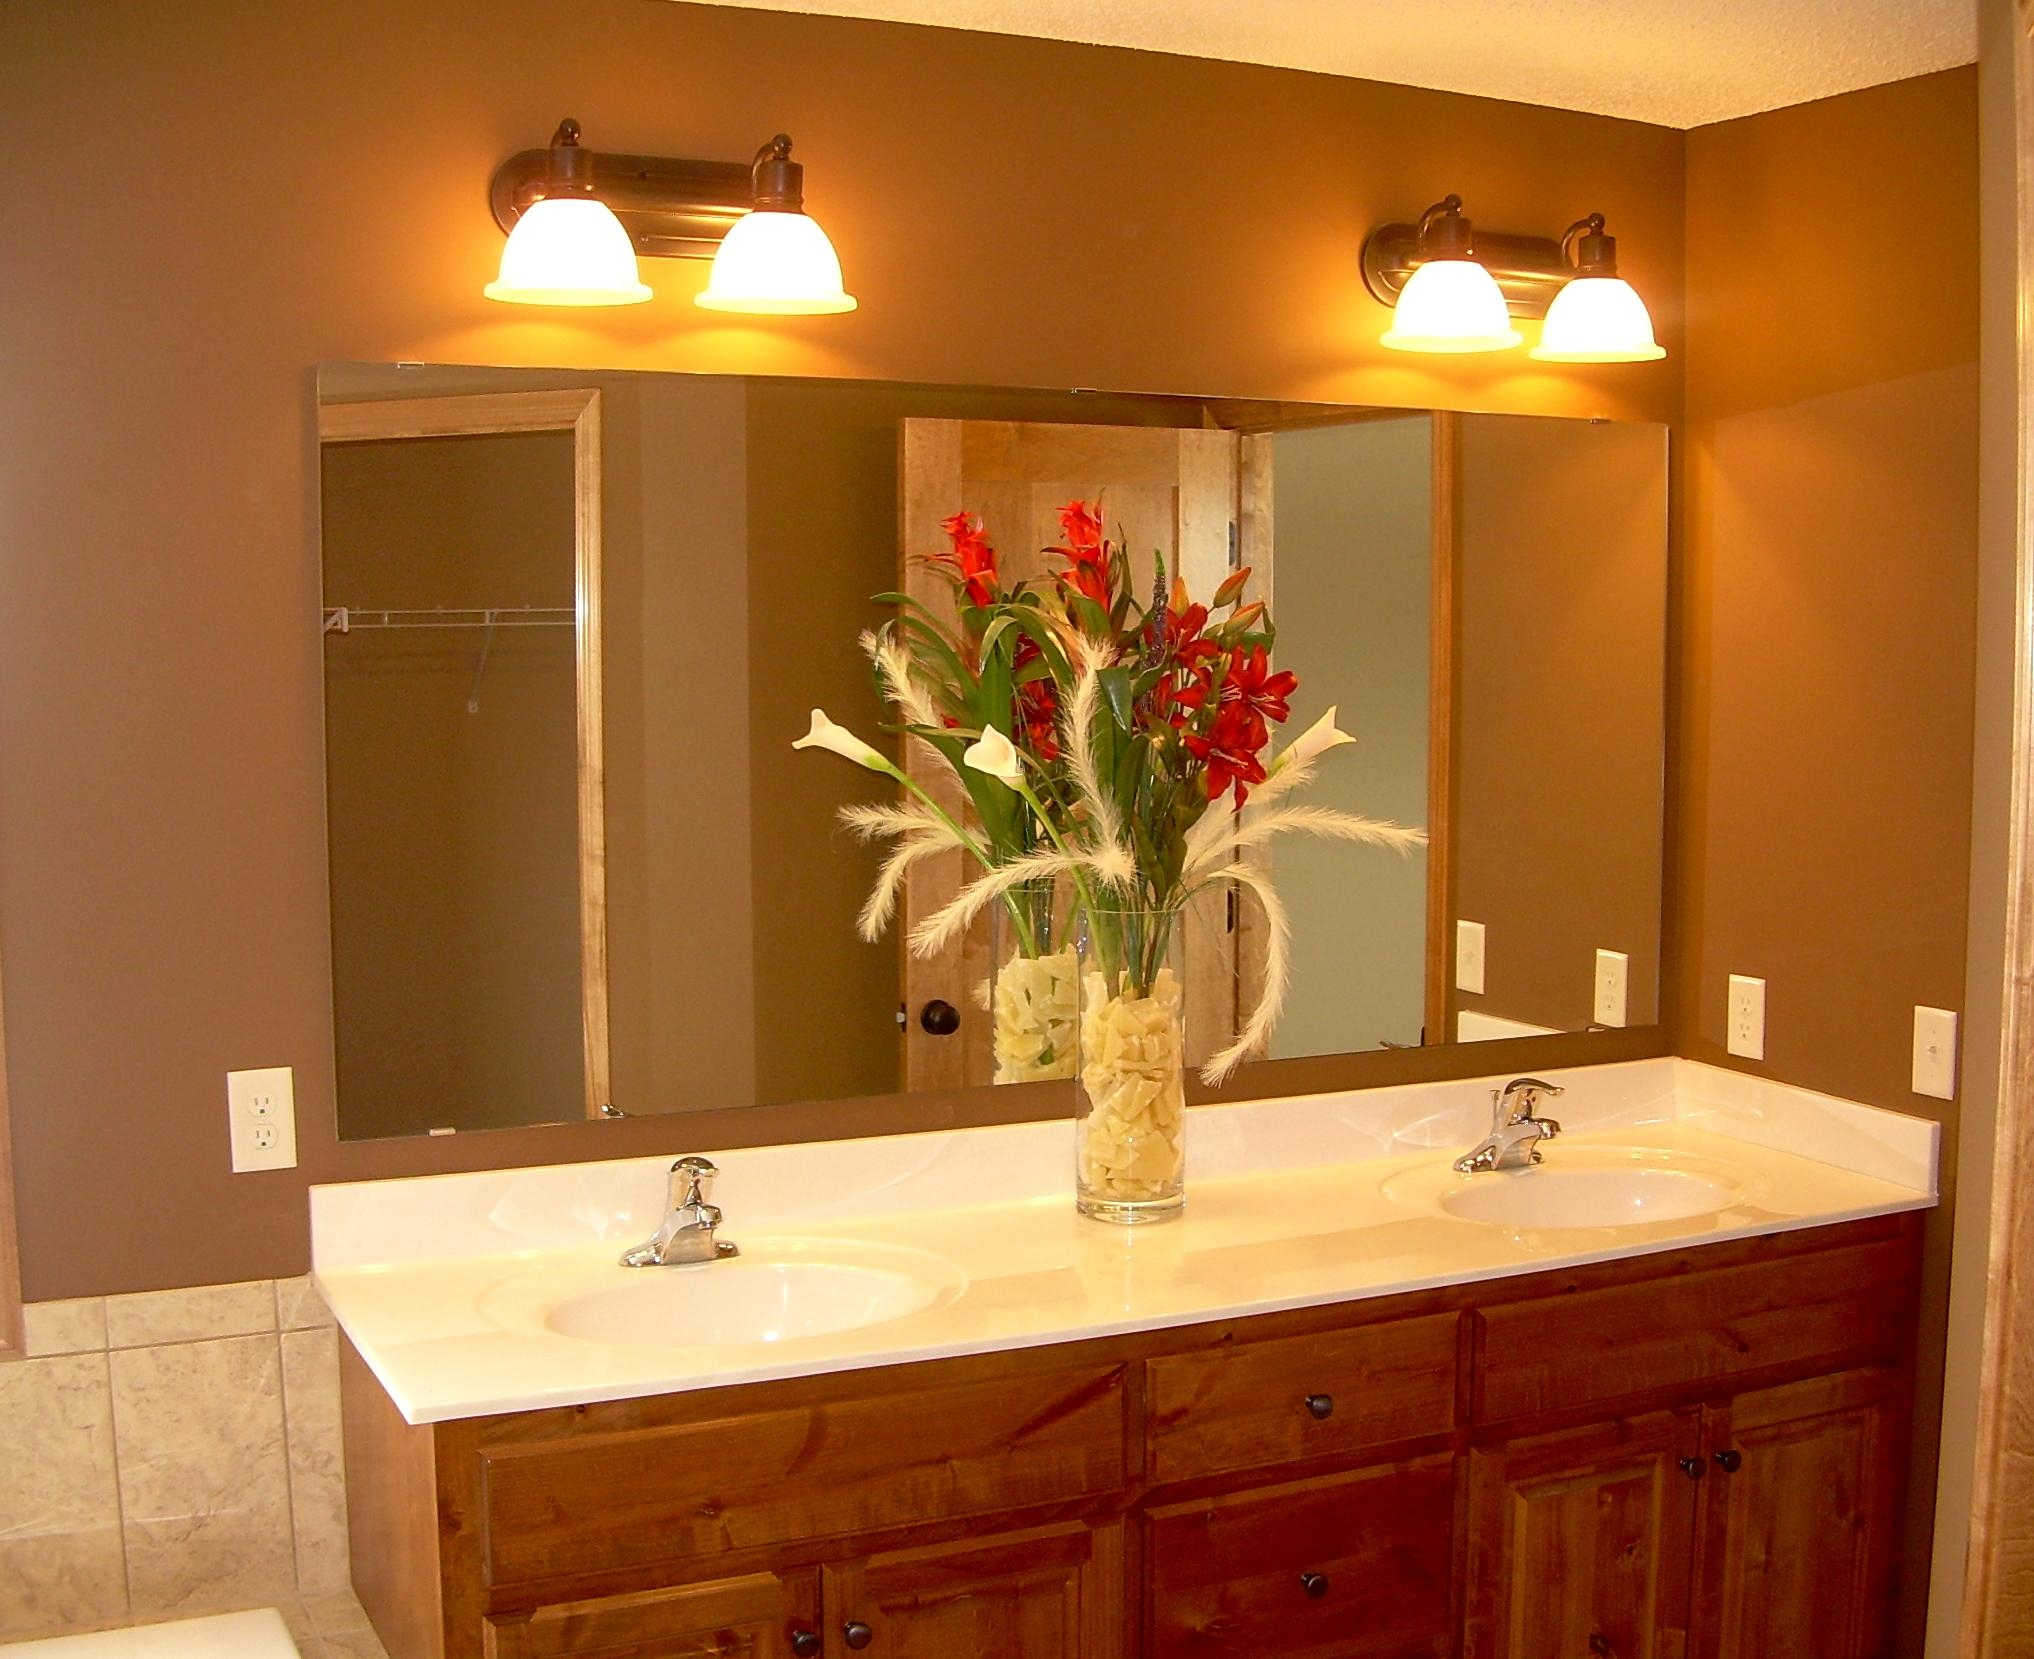 How To Choose A Bathroom Mirror | Harkraft Inside Bathroom Lighting And Mirrors (Image 20 of 20)